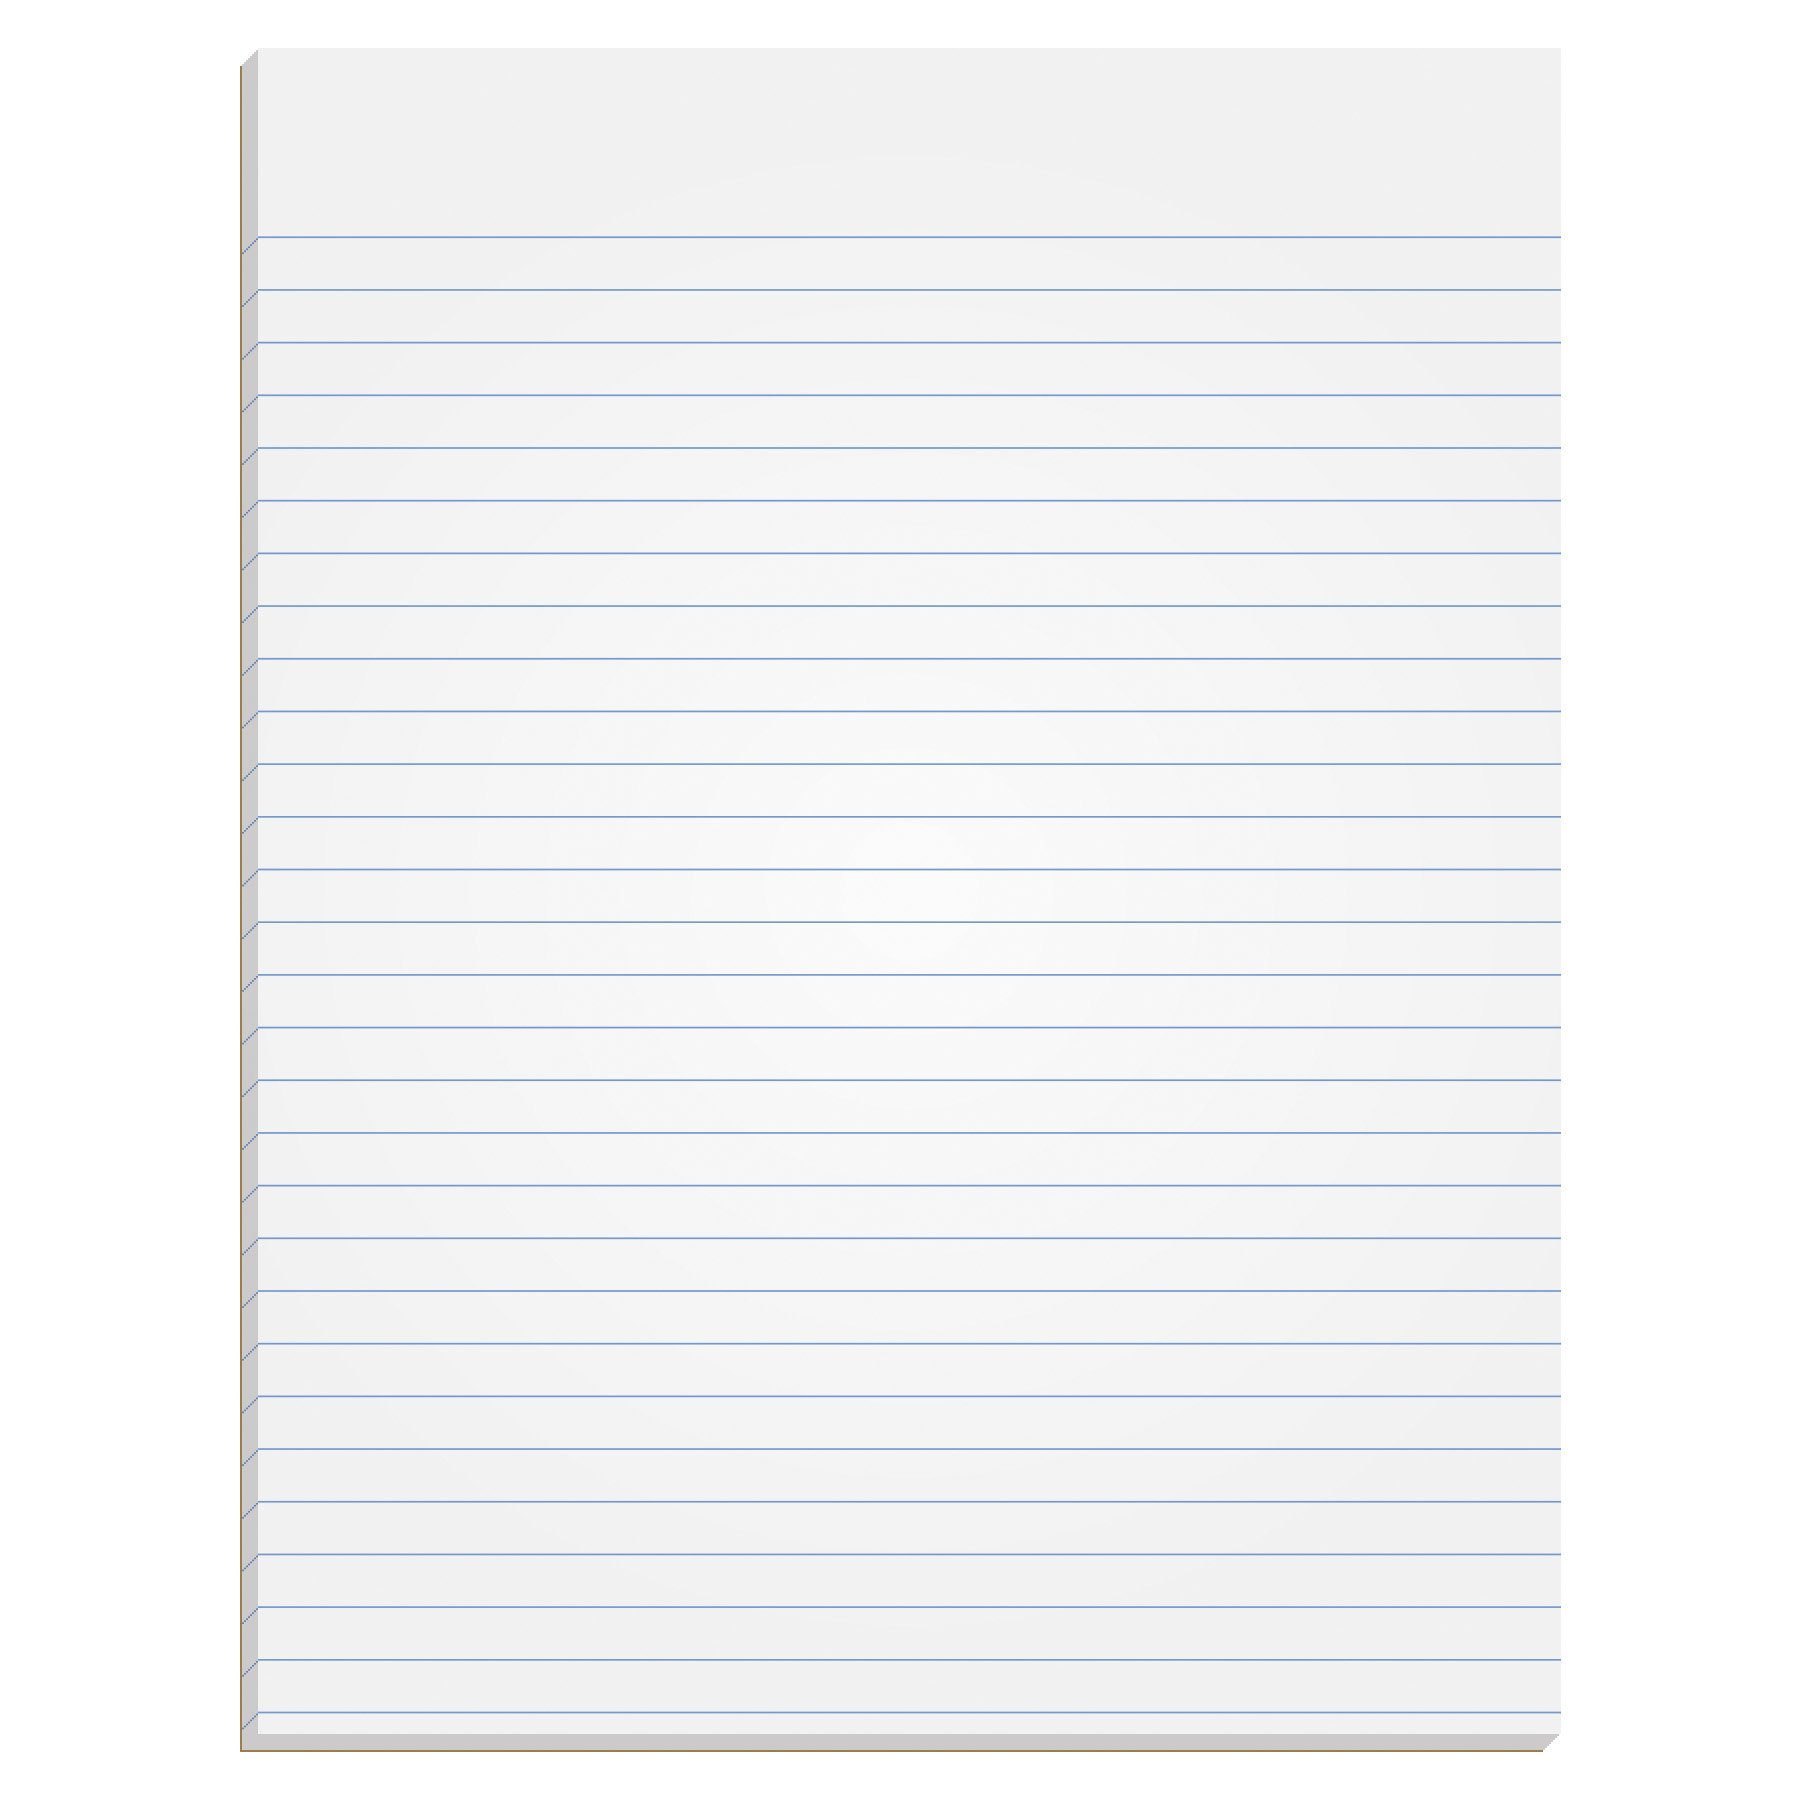 TOPS The Legal Pad Writing Pads, Glue Top, 8-1/2'' x 11'', Narrow Rule, 50 Sheets, 12 Pack (7529) by TOPS